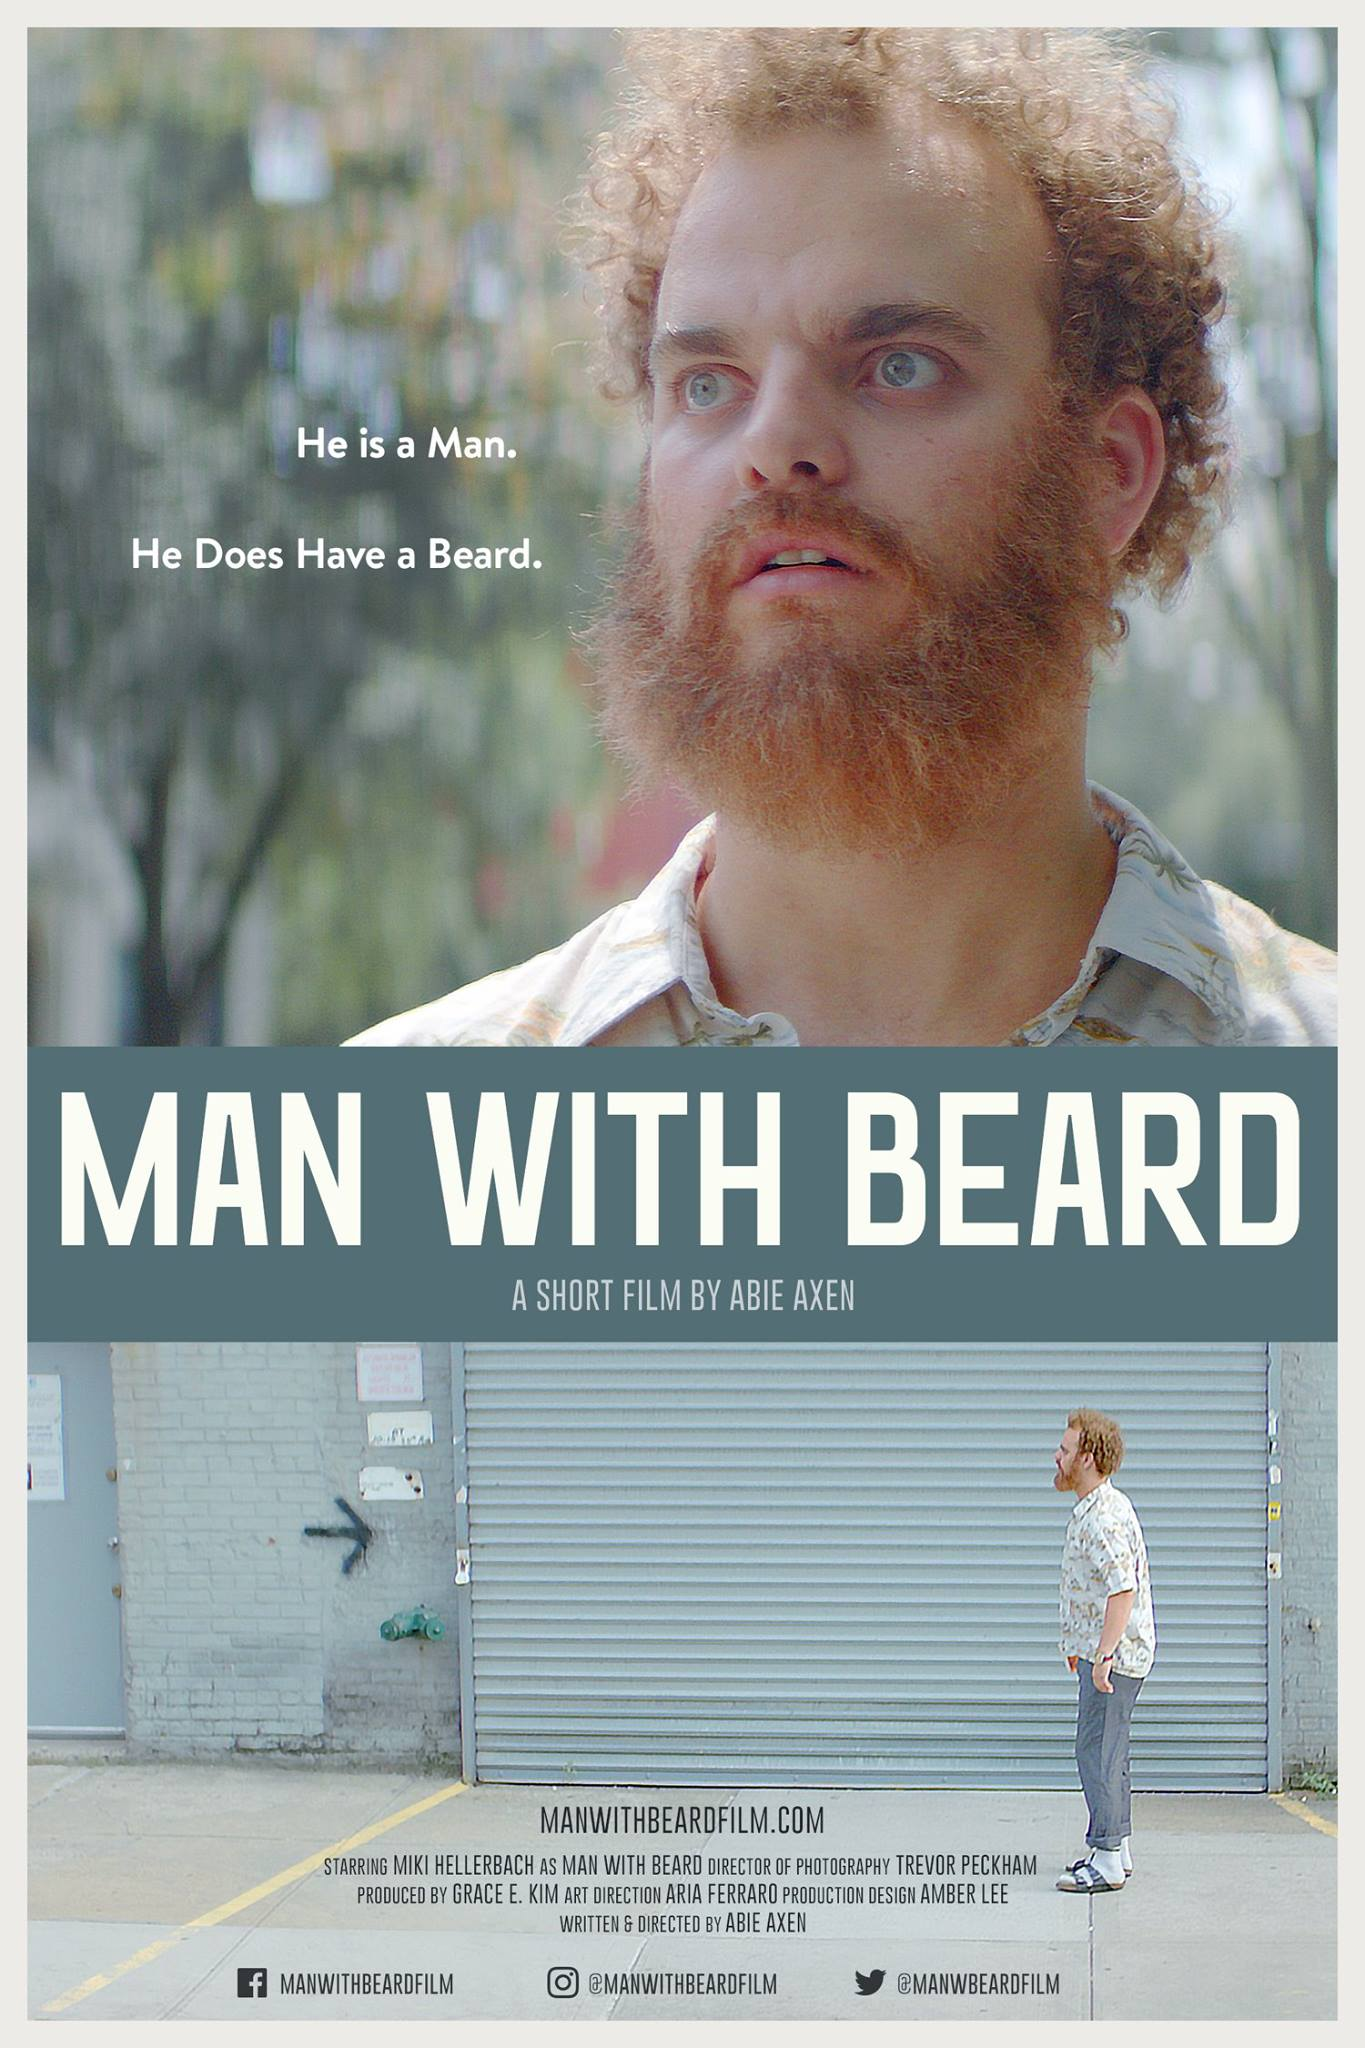 Man With Beard Film Poster.jpg